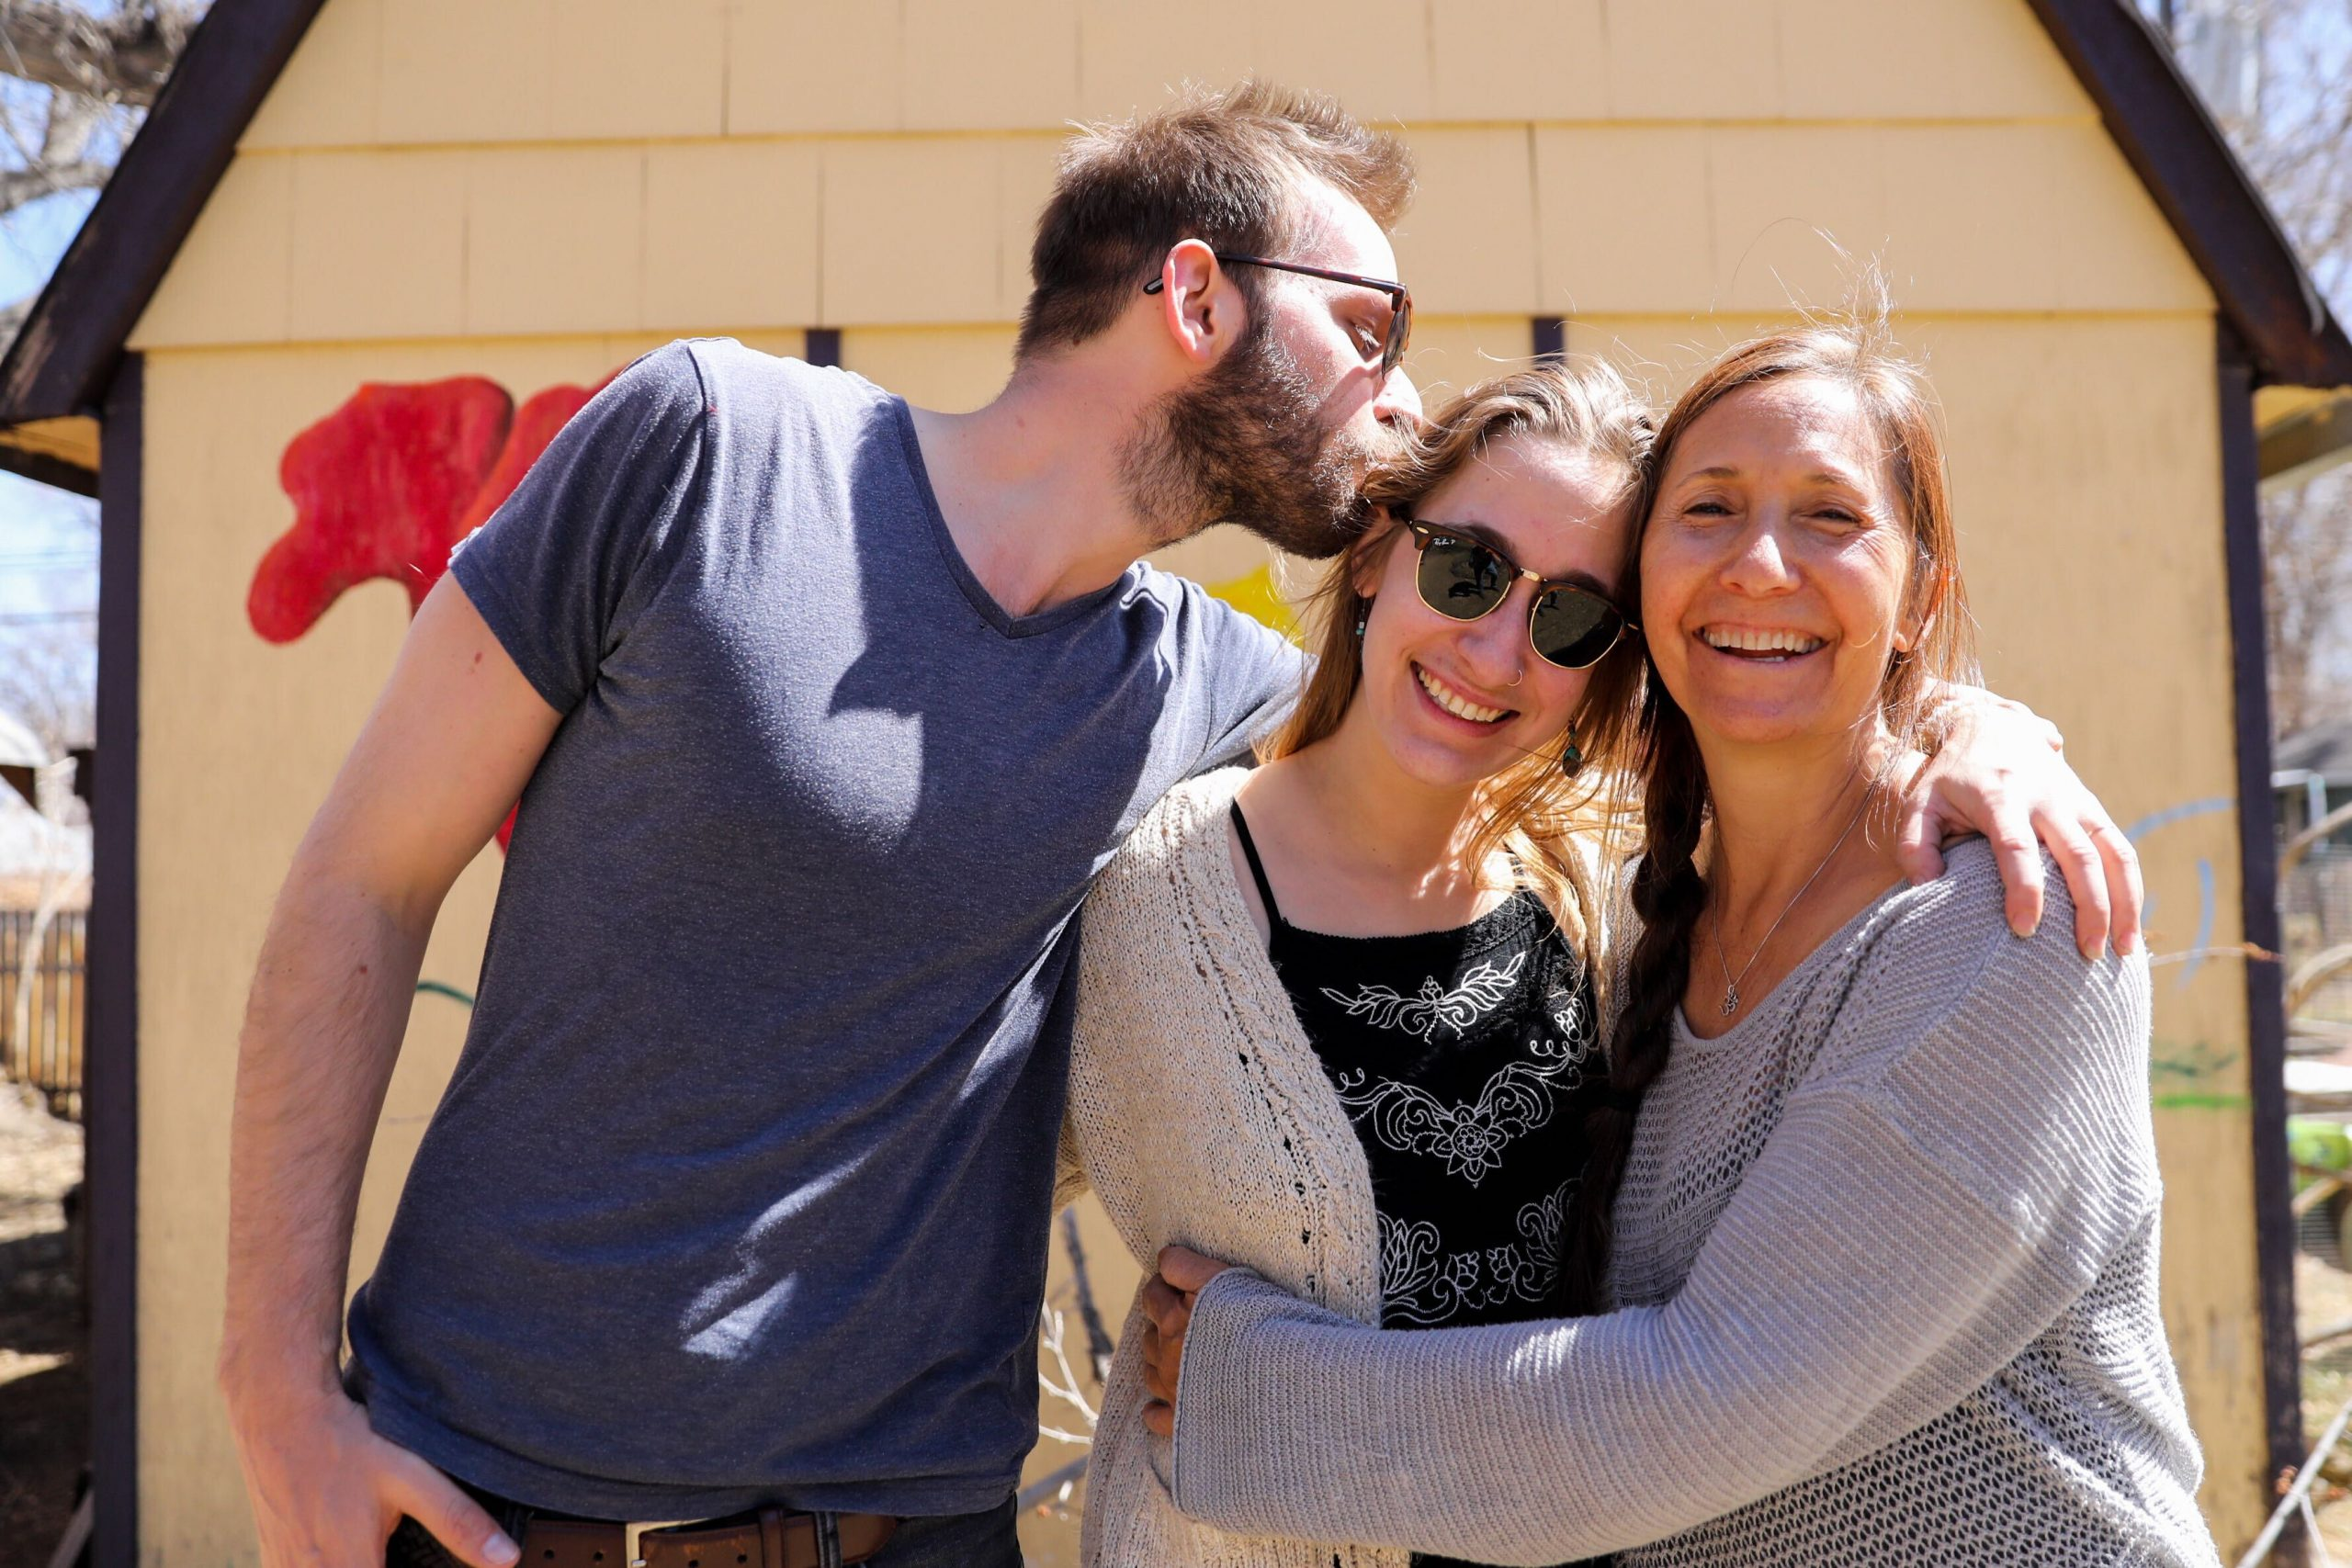 Hanna Bull (center) with her husband Raviv Bull and her mother Ramya Bruskin in the backyard of Ramya's home in Longmont on Monday, March 30, 2021.